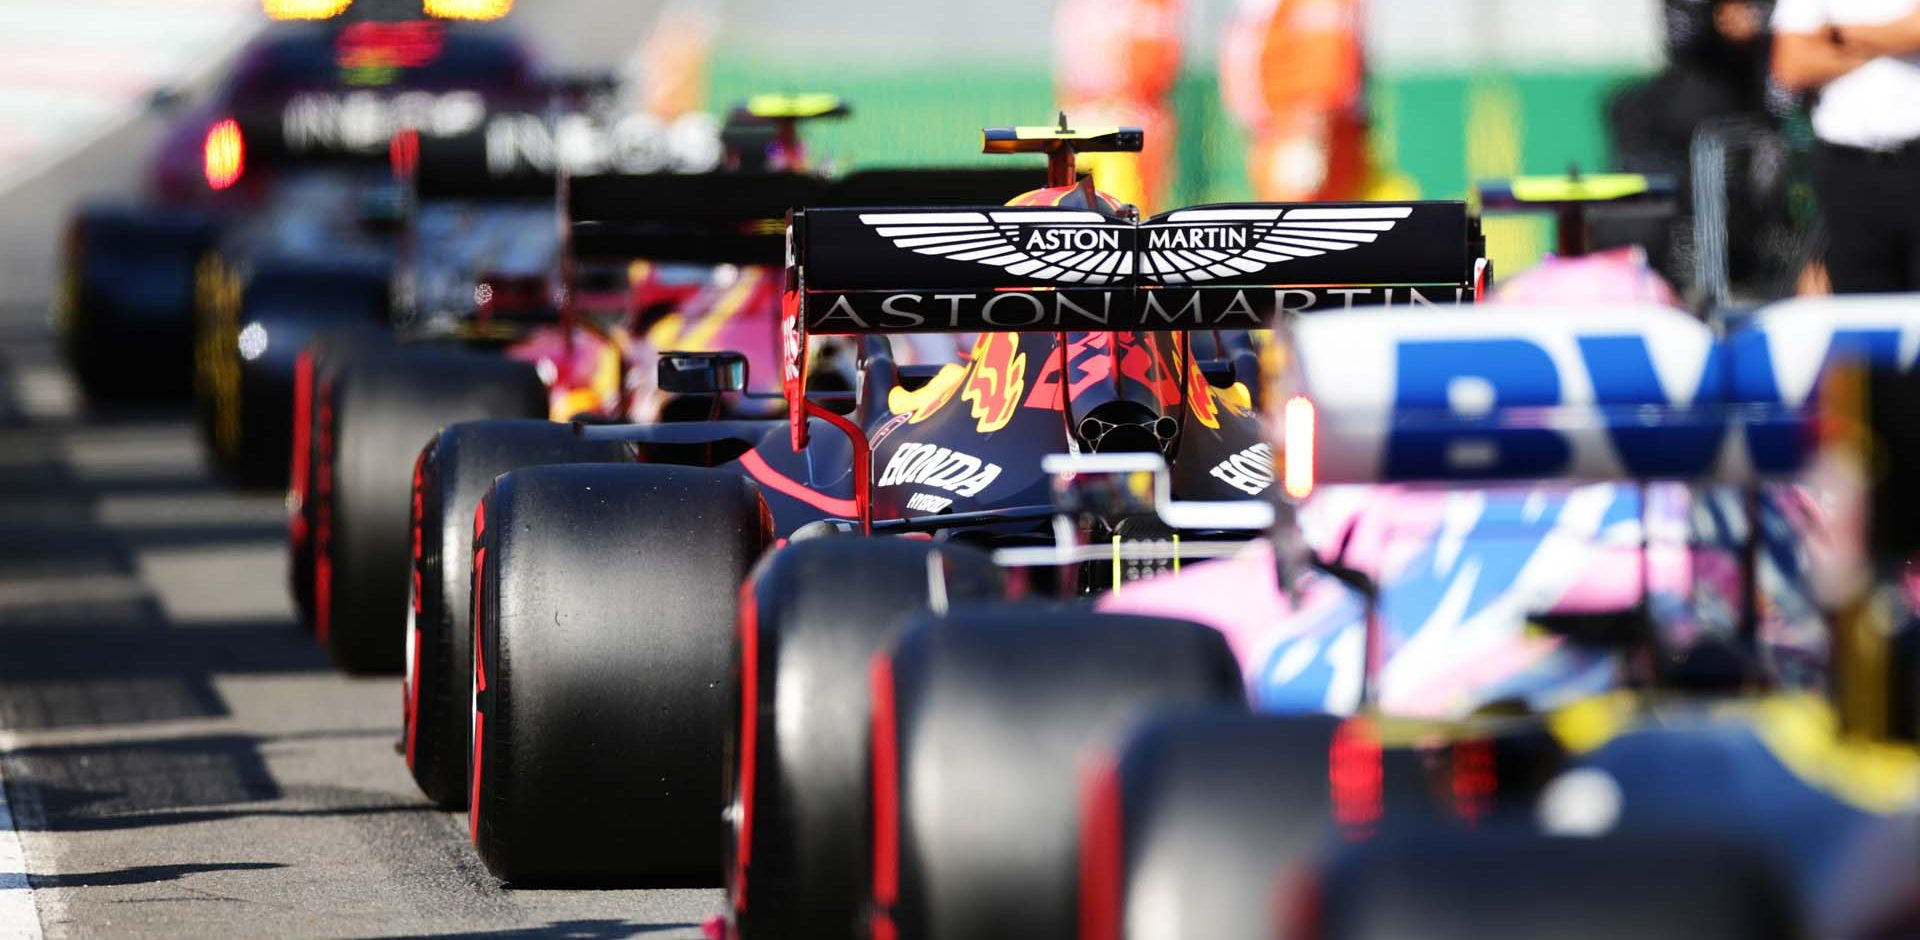 SCARPERIA, ITALY - SEPTEMBER 13: Alexander Albon of Thailand driving the (23) Aston Martin Red Bull Racing RB16 lines up in the pitlane during a red flag period during the F1 Grand Prix of Tuscany at Mugello Circuit on September 13, 2020 in Scarperia, Italy. (Photo by Peter Fox/Getty Images)